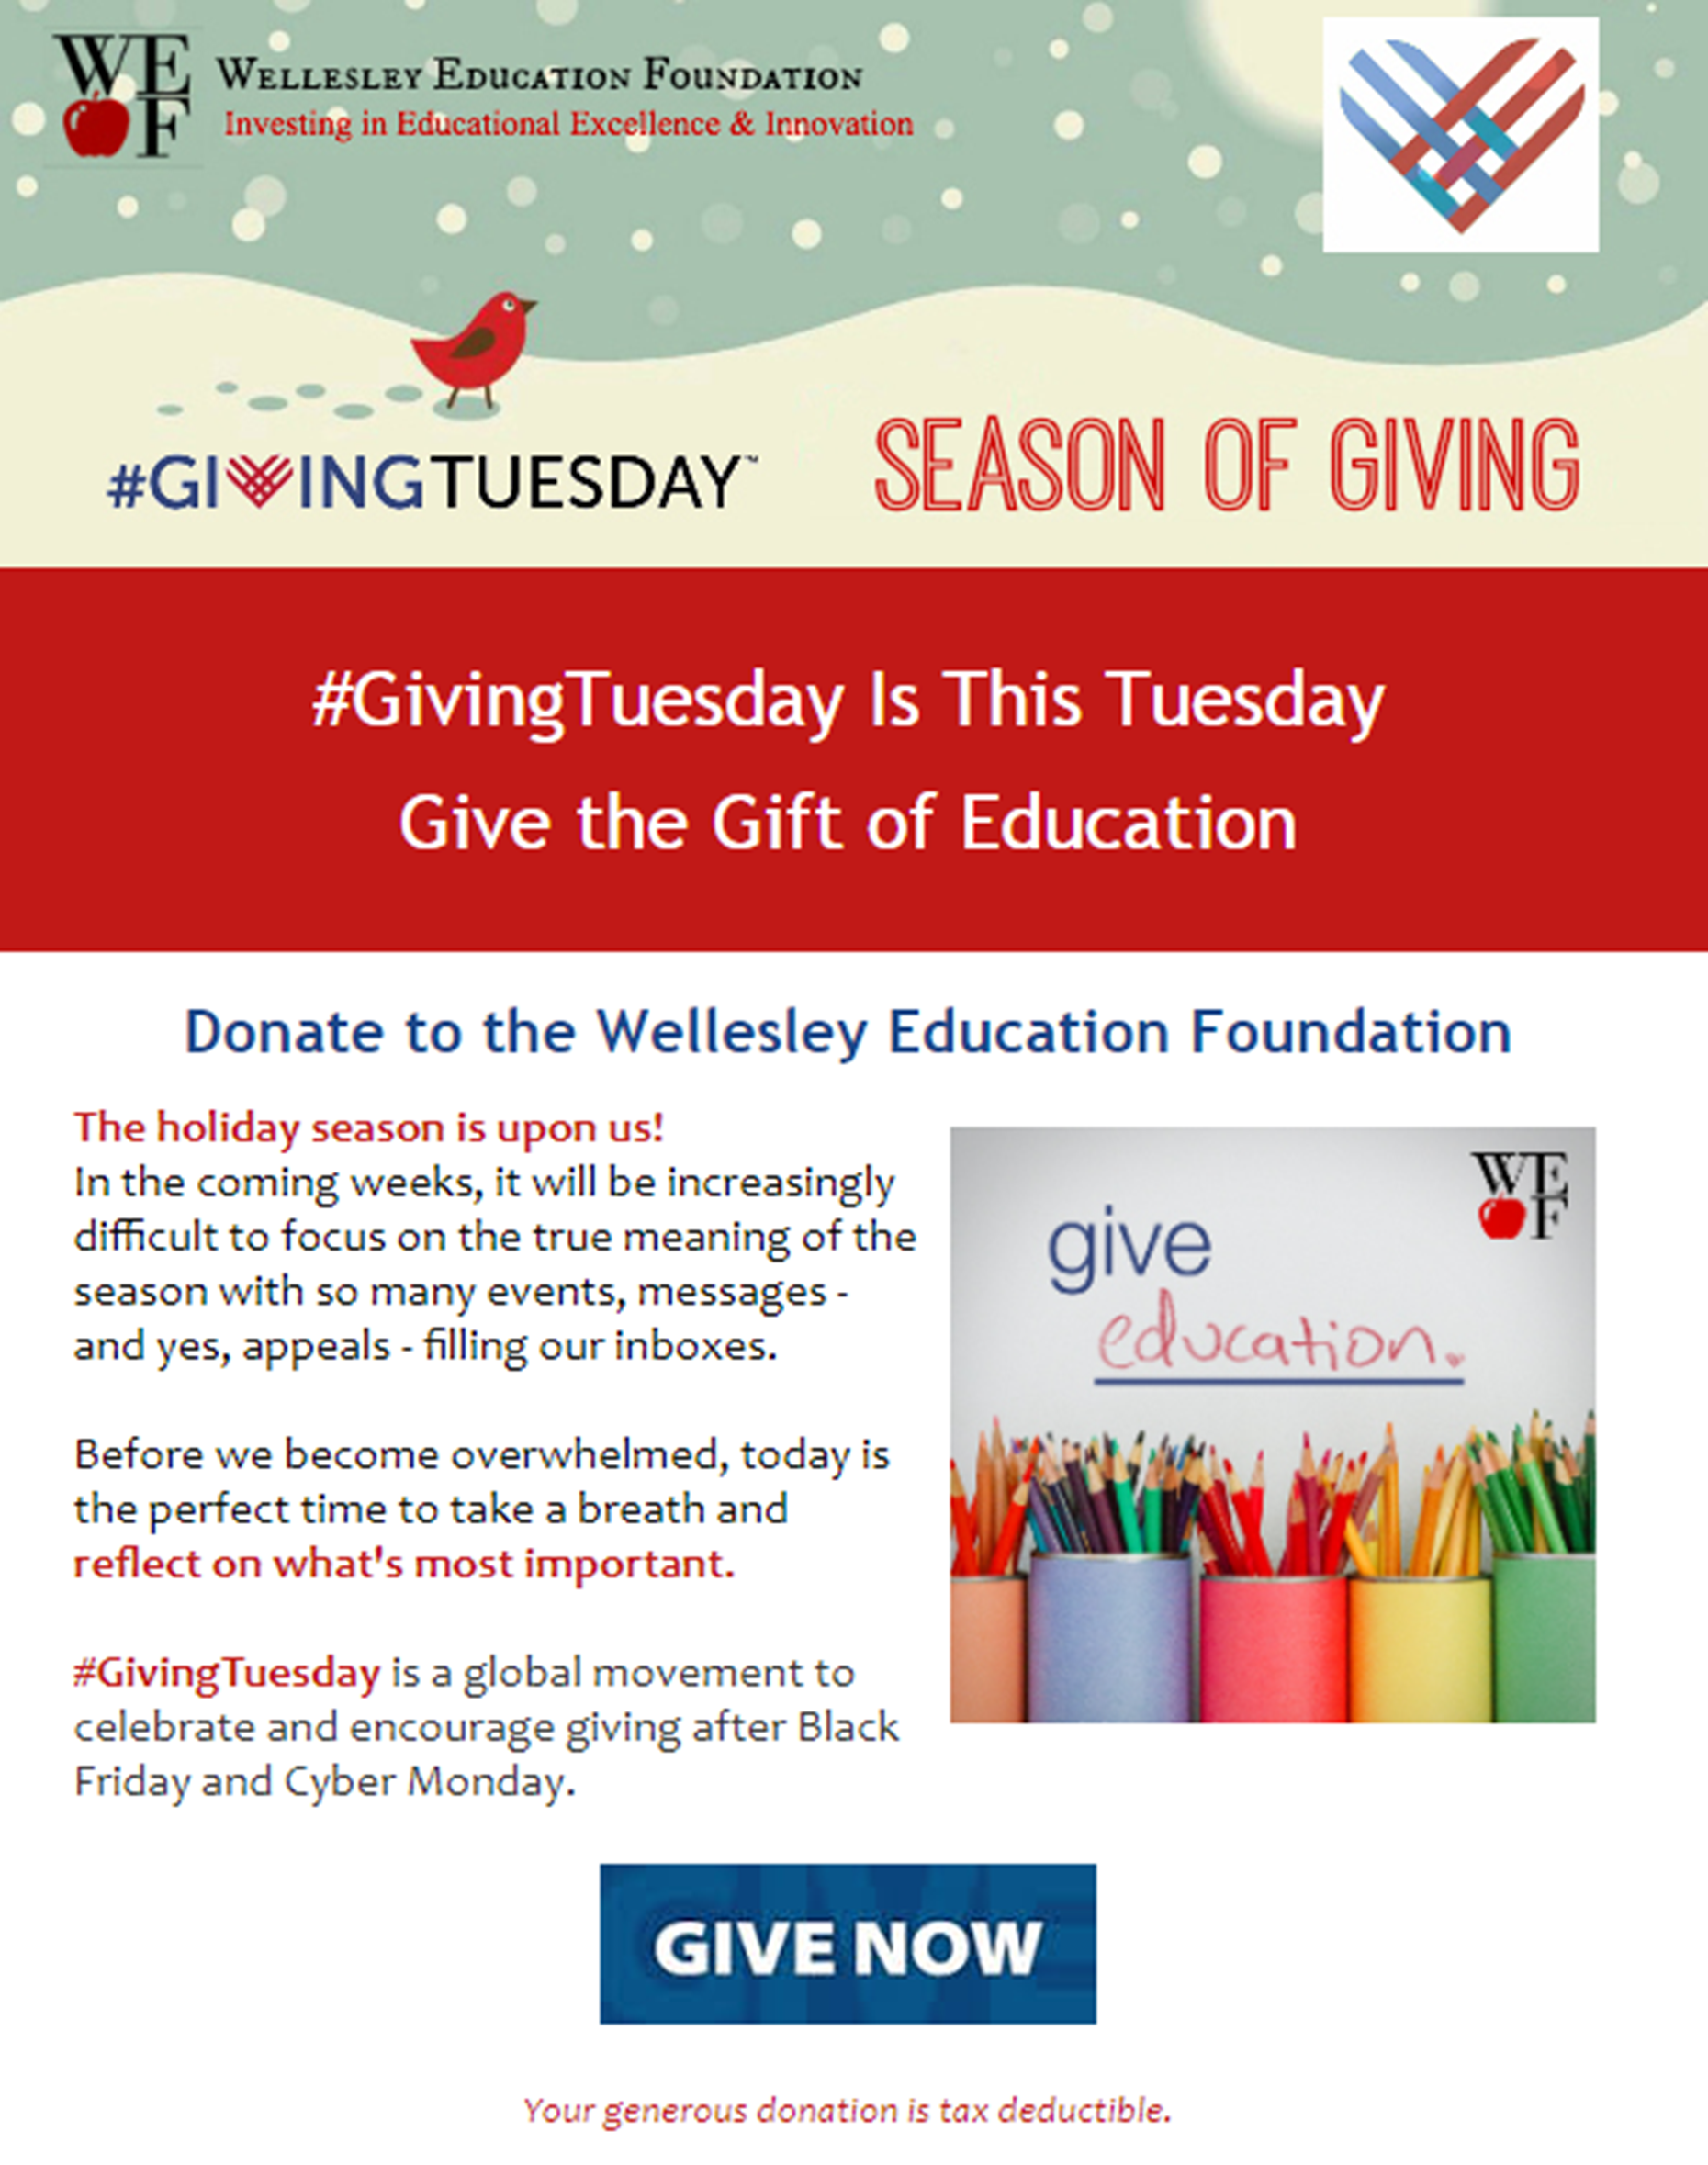 Wellesly Education Foundation Giving Tuesday email campaign